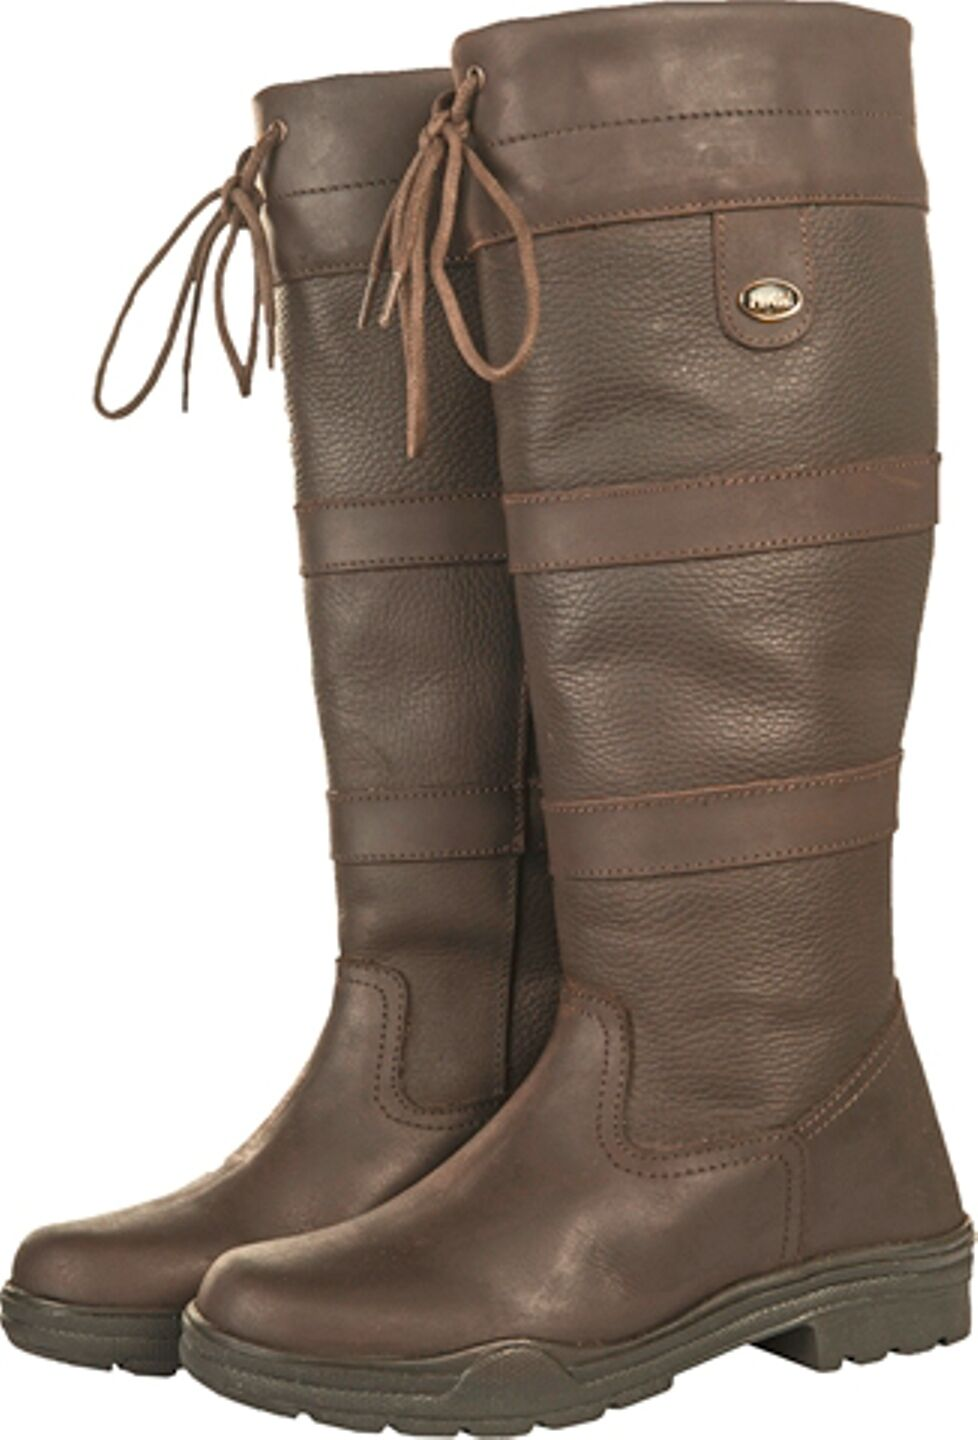 REITSTIEFEL Lederreitstiefel flexibel 36-44 brown Fettleder NORMAL   KURZ WEIT